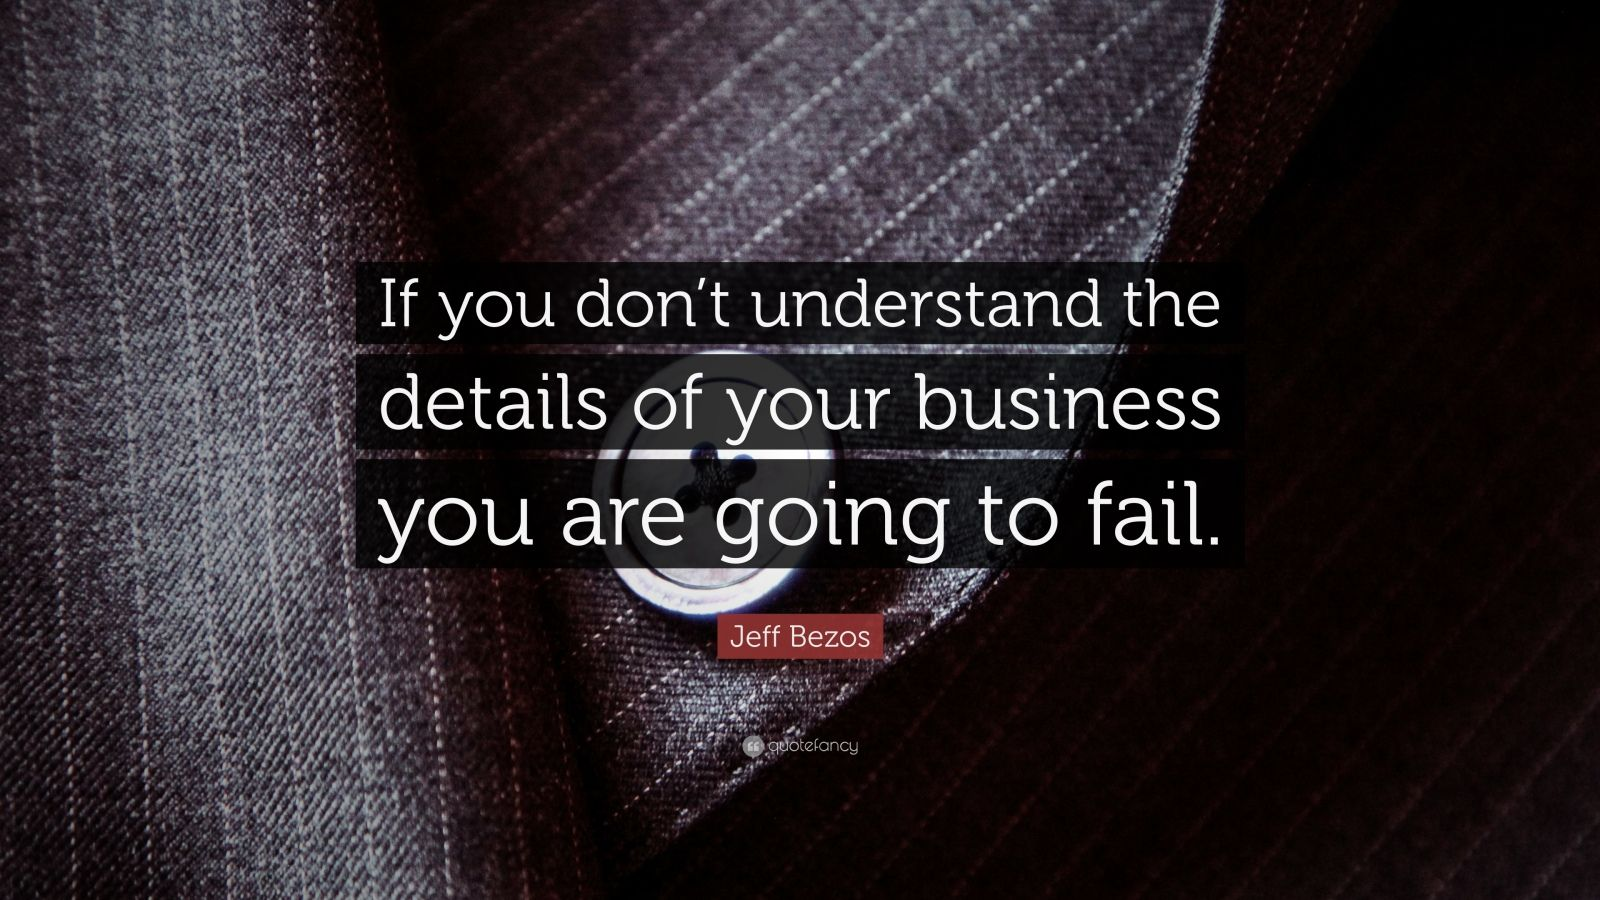 """Jeff Bezos Quote: """"If you don't understand the details of your business you are going to fail."""""""